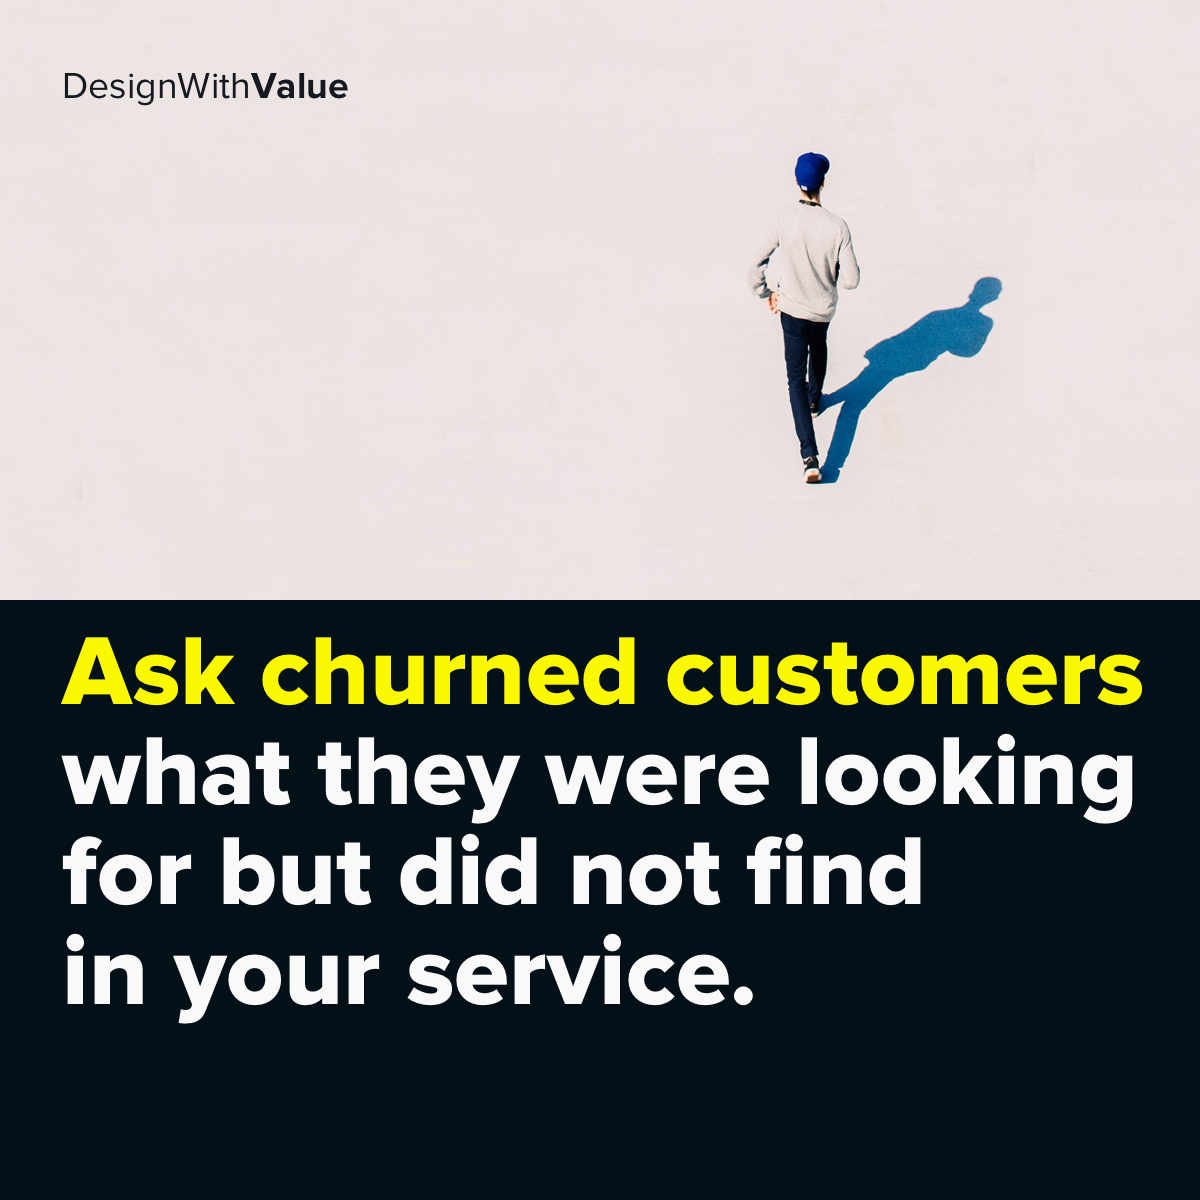 Ask churned customers what they were looking for but did not find in your service.